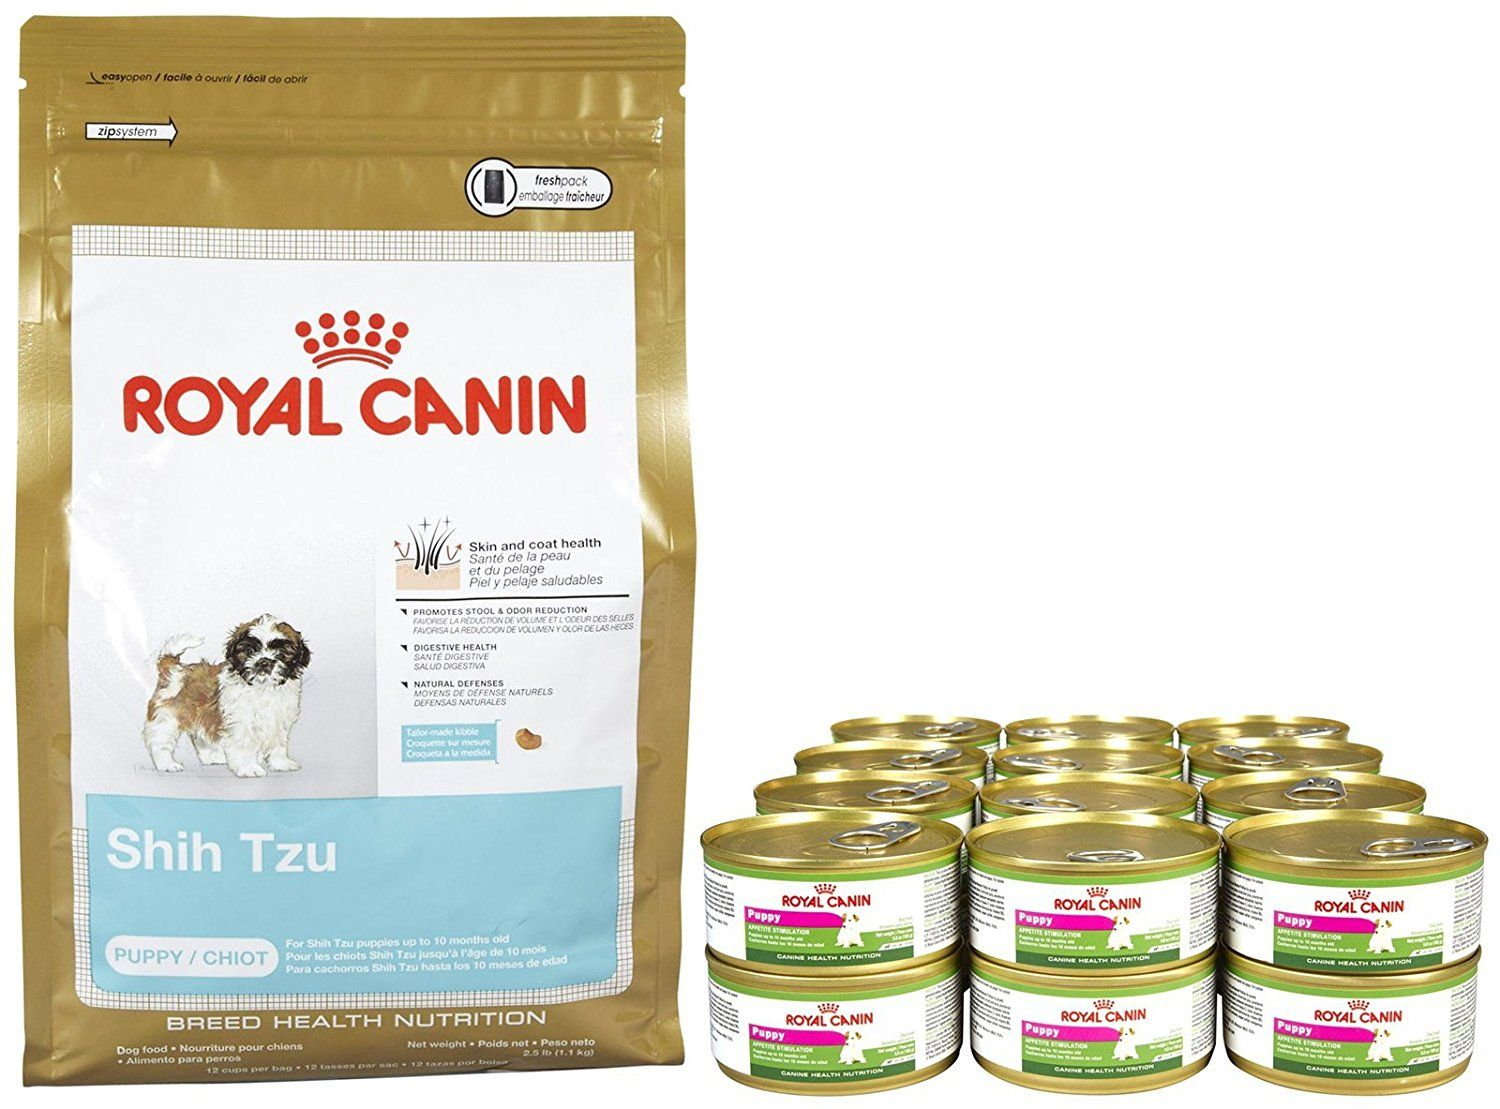 Royal Canin Breed Health Nutrition Shih Tzu Puppy Bundle Find Out More Details By Clicking The Image Dog Shih Tzu Puppy Health And Nutrition Royal Canin